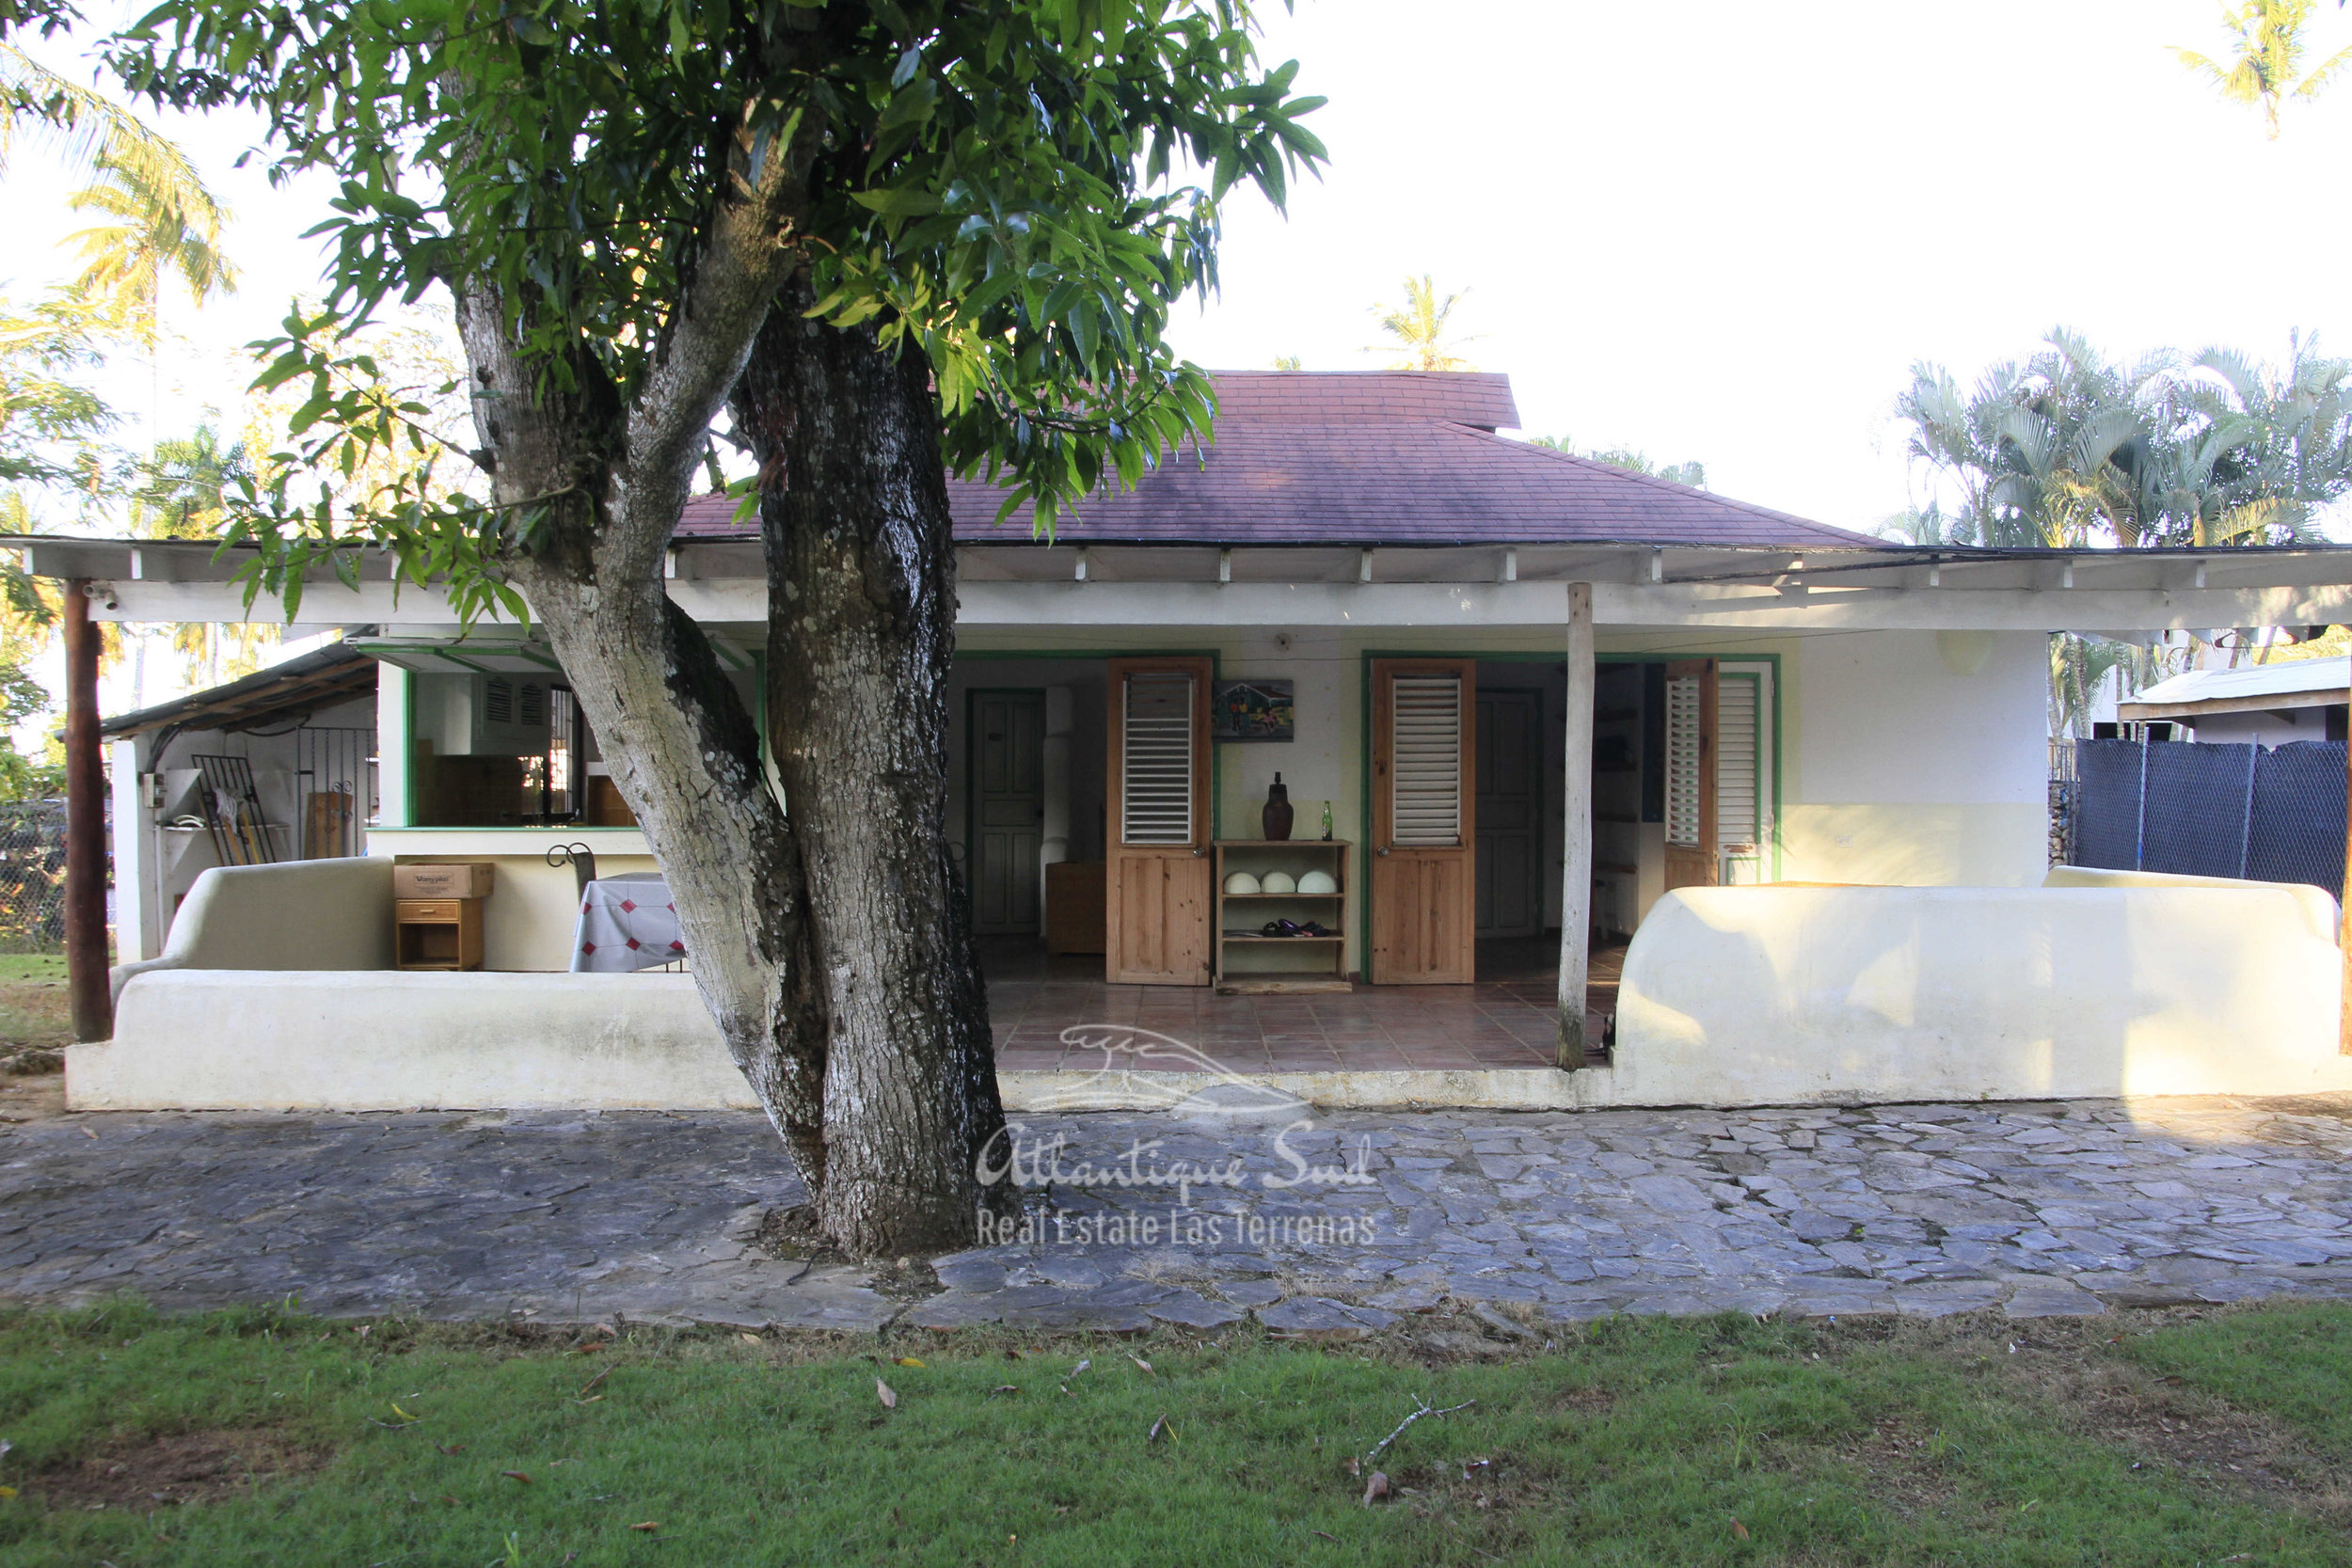 Charming villa in central location Real Estate Las Terrenas Atlantique Sud Dominican Republic6.jpg